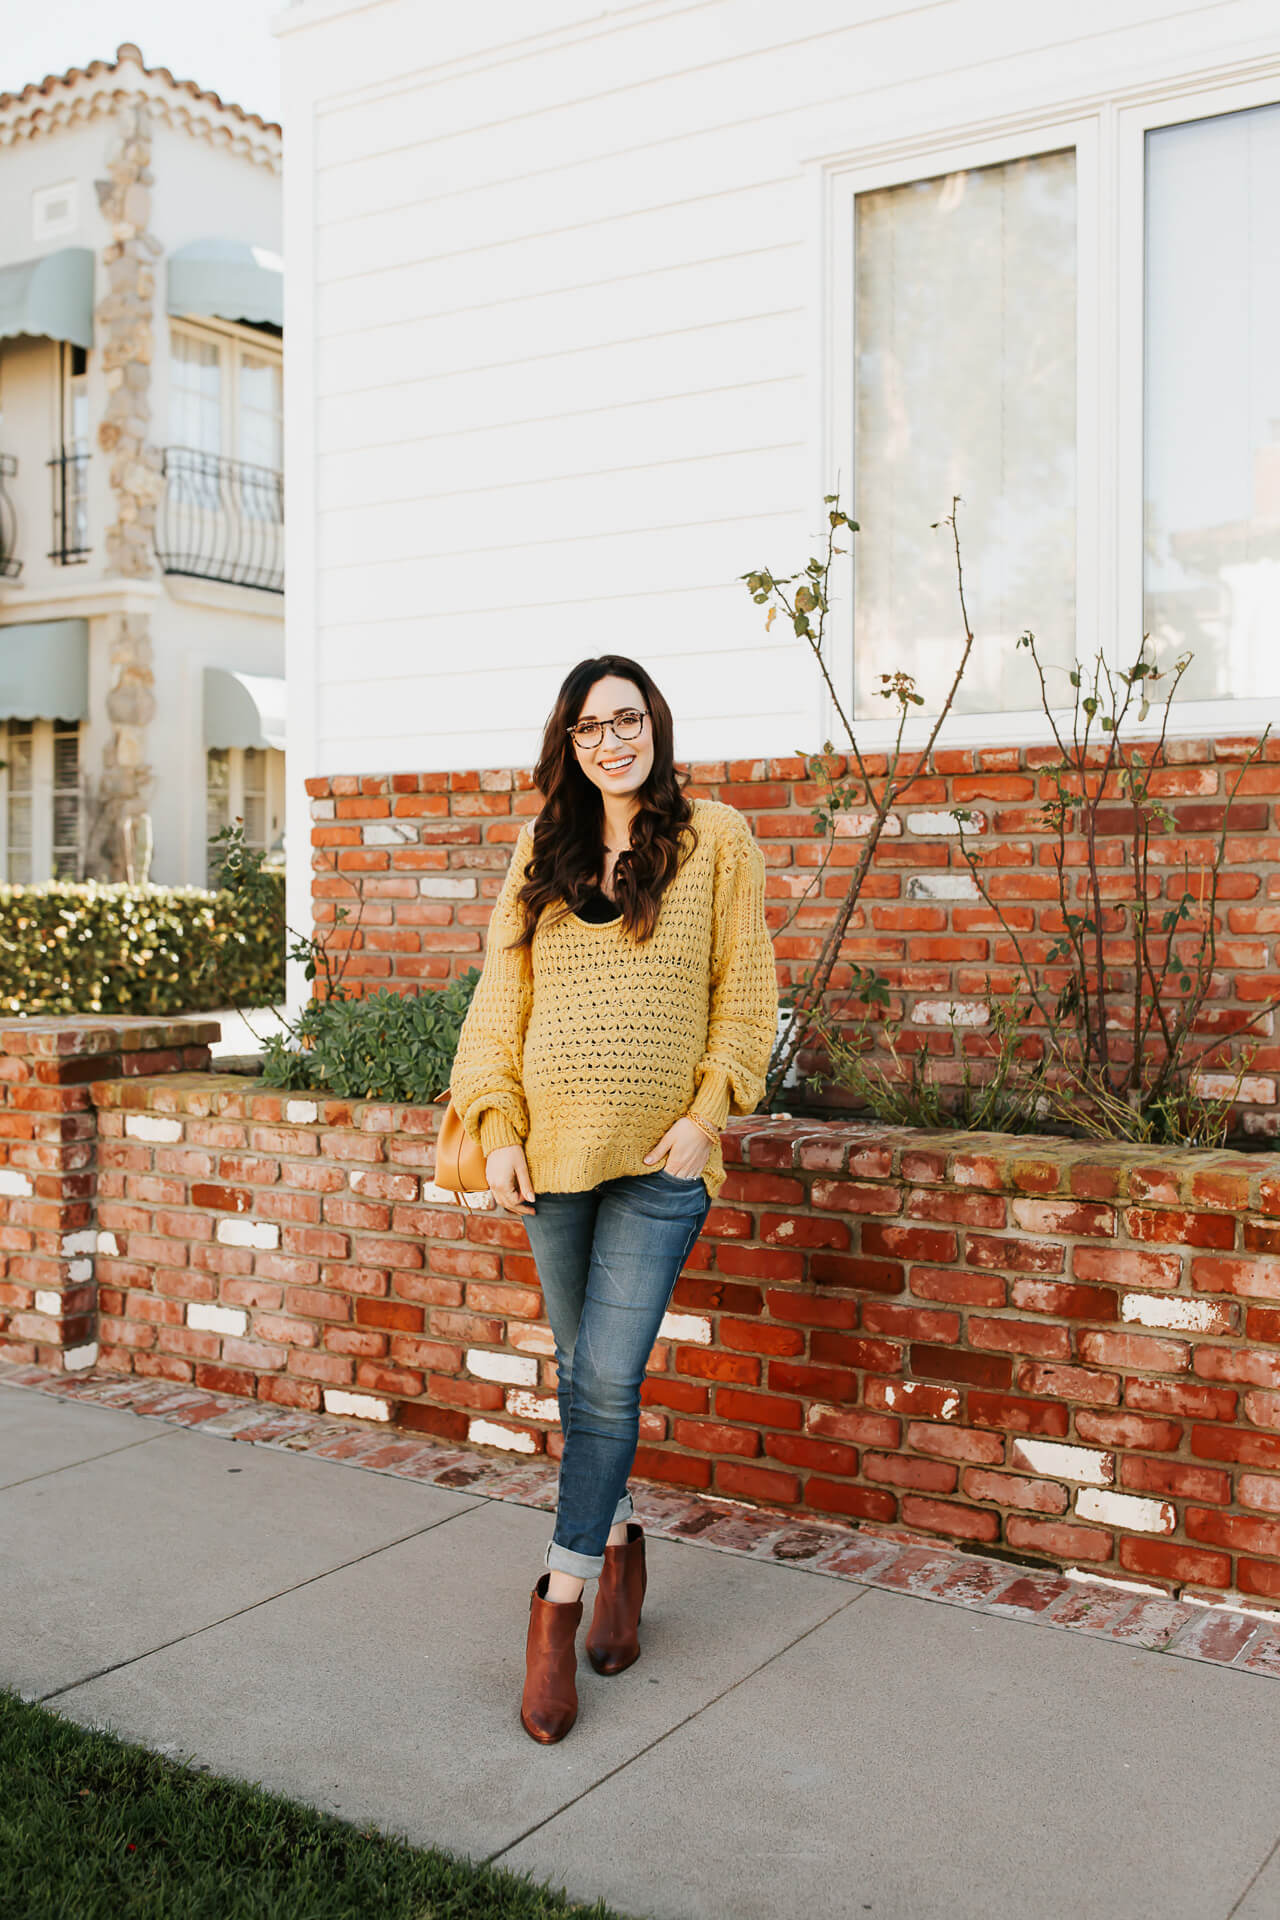 This oversized sweater is such a pretty shade of Gen-Z yellow! How to style an oversized sweater! - M Loves M @marmar